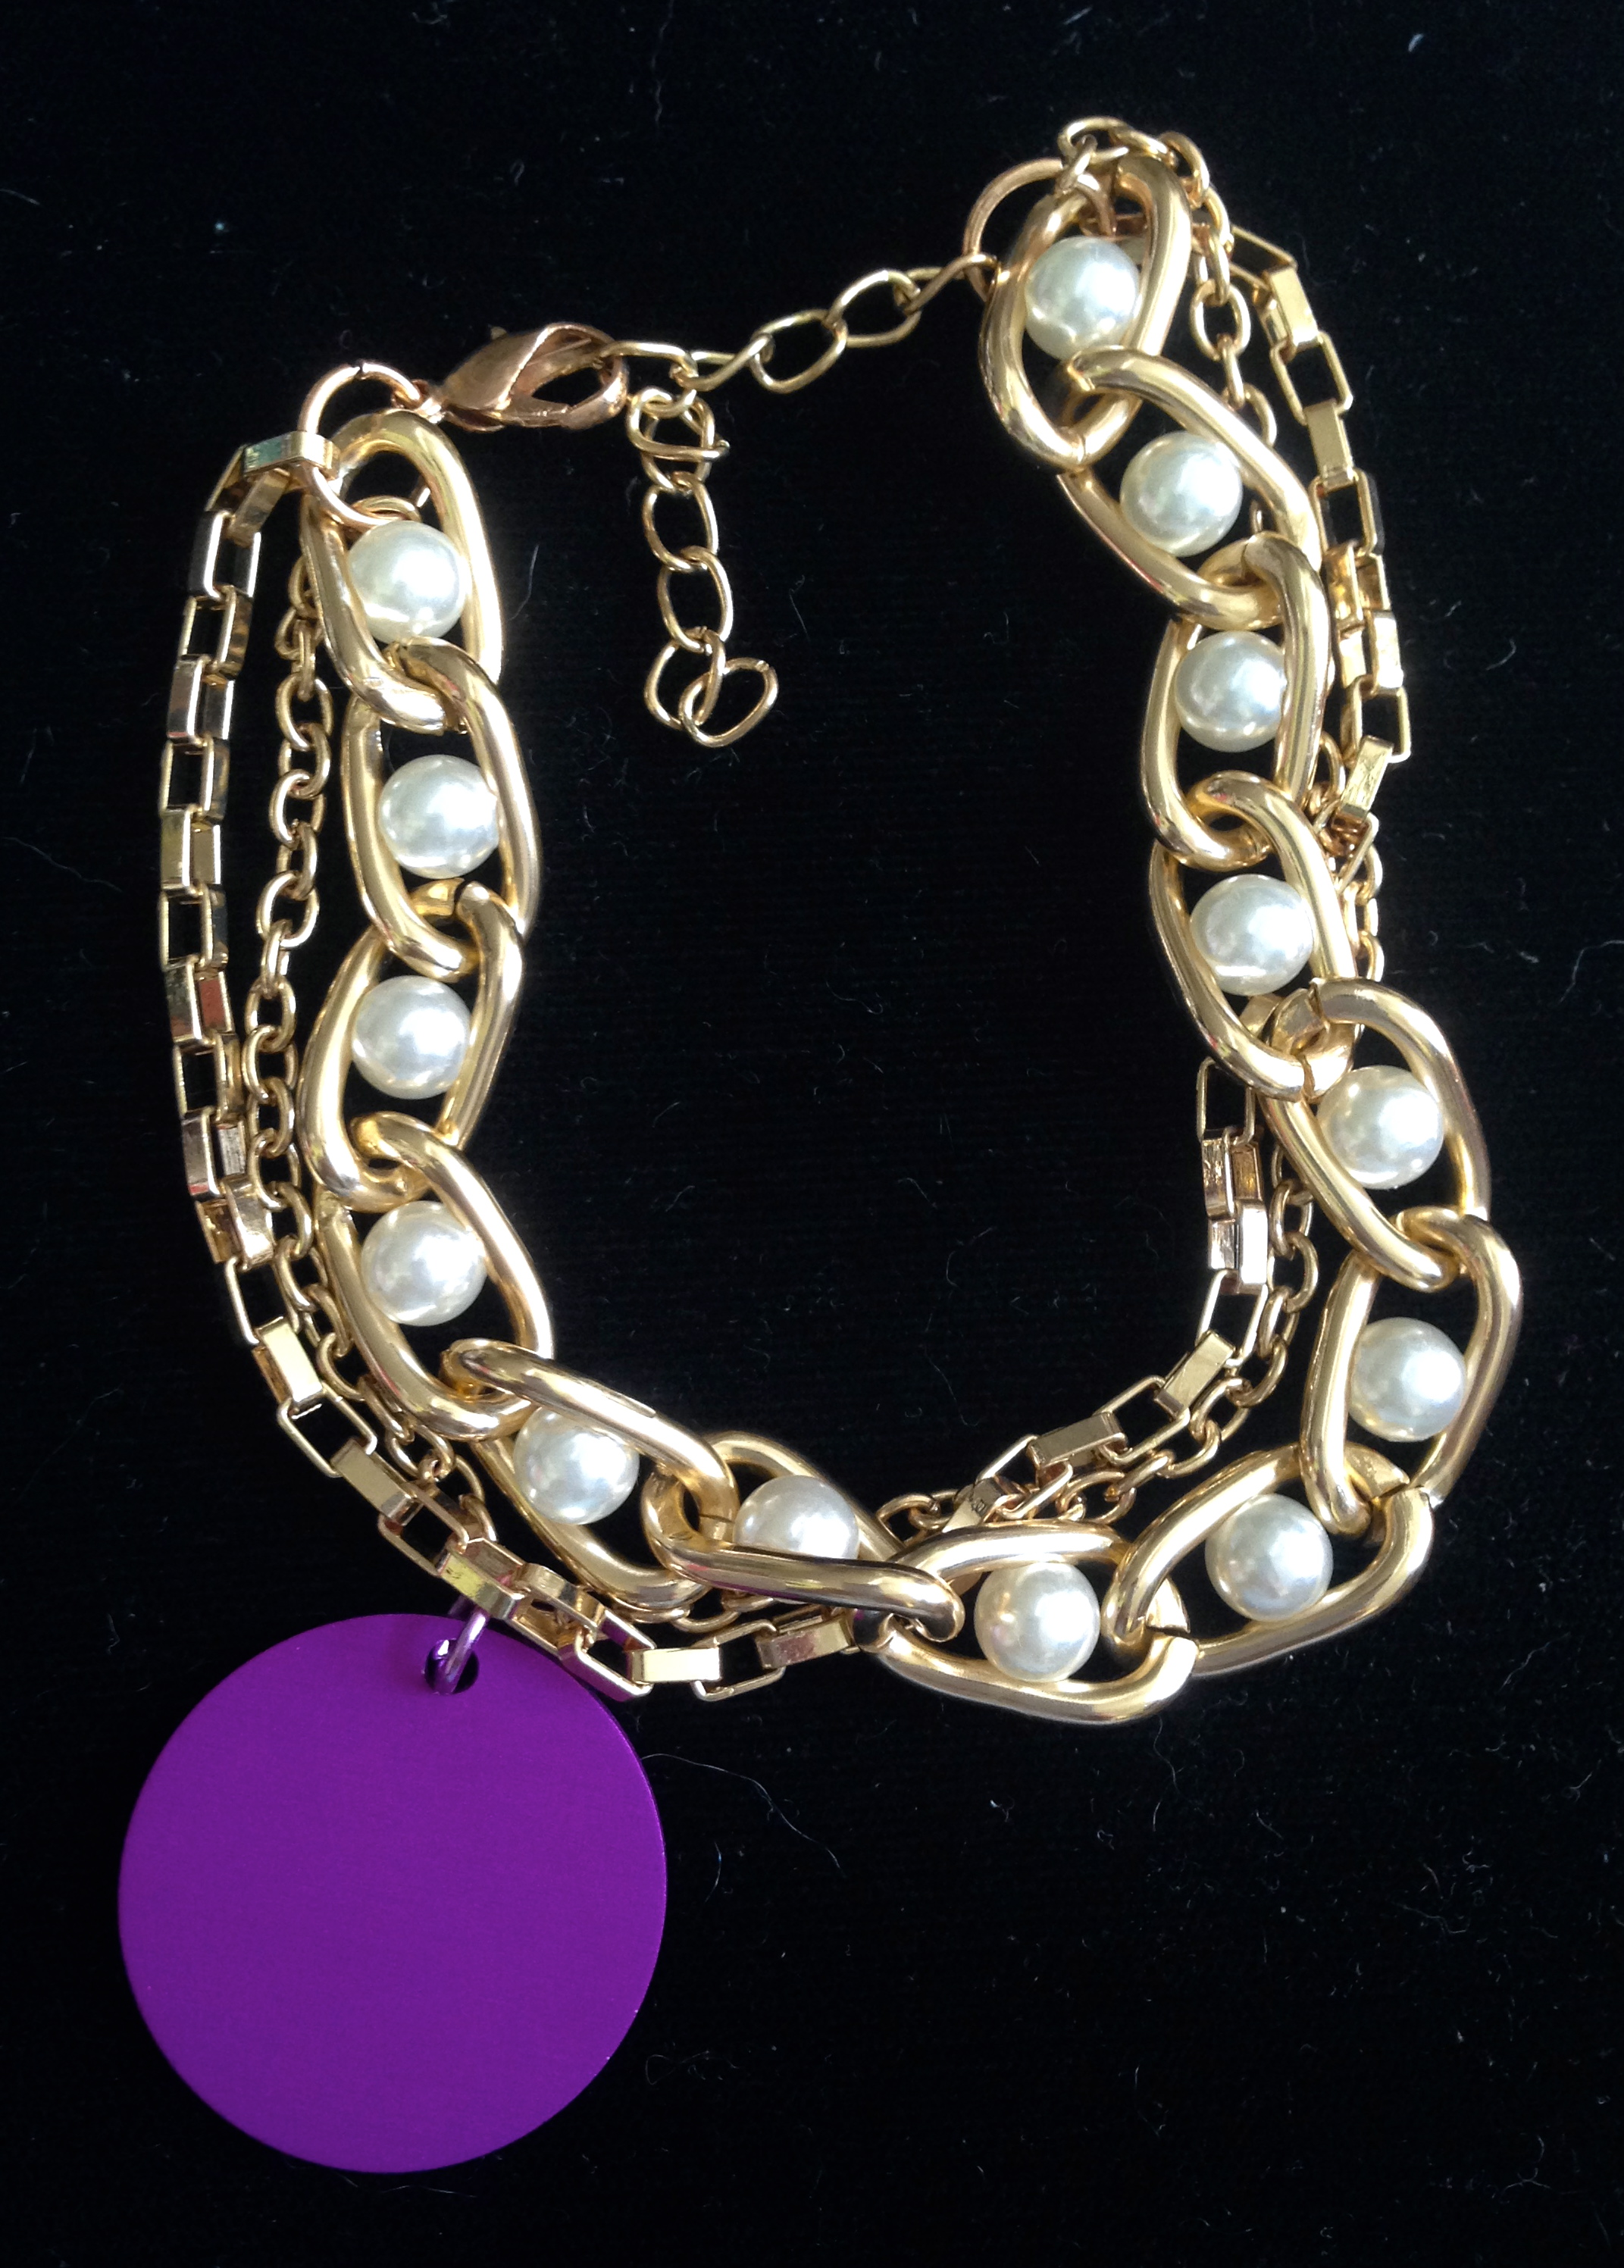 Gold and Pearl Multi-Chain Bracelet with Energy Disk